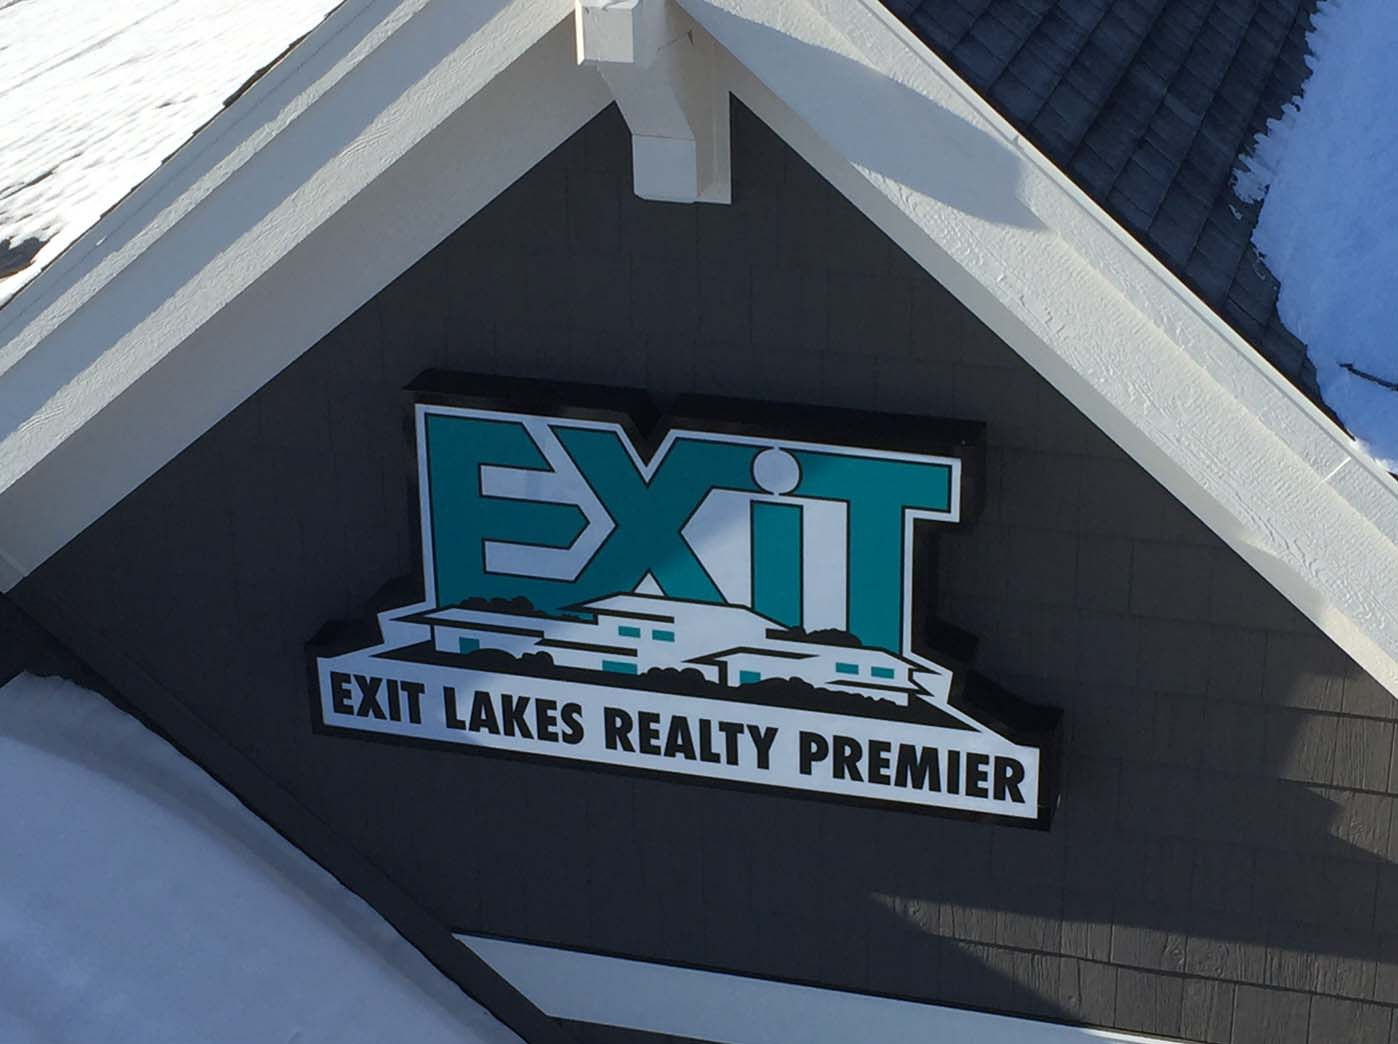 Exit Lakes Realty